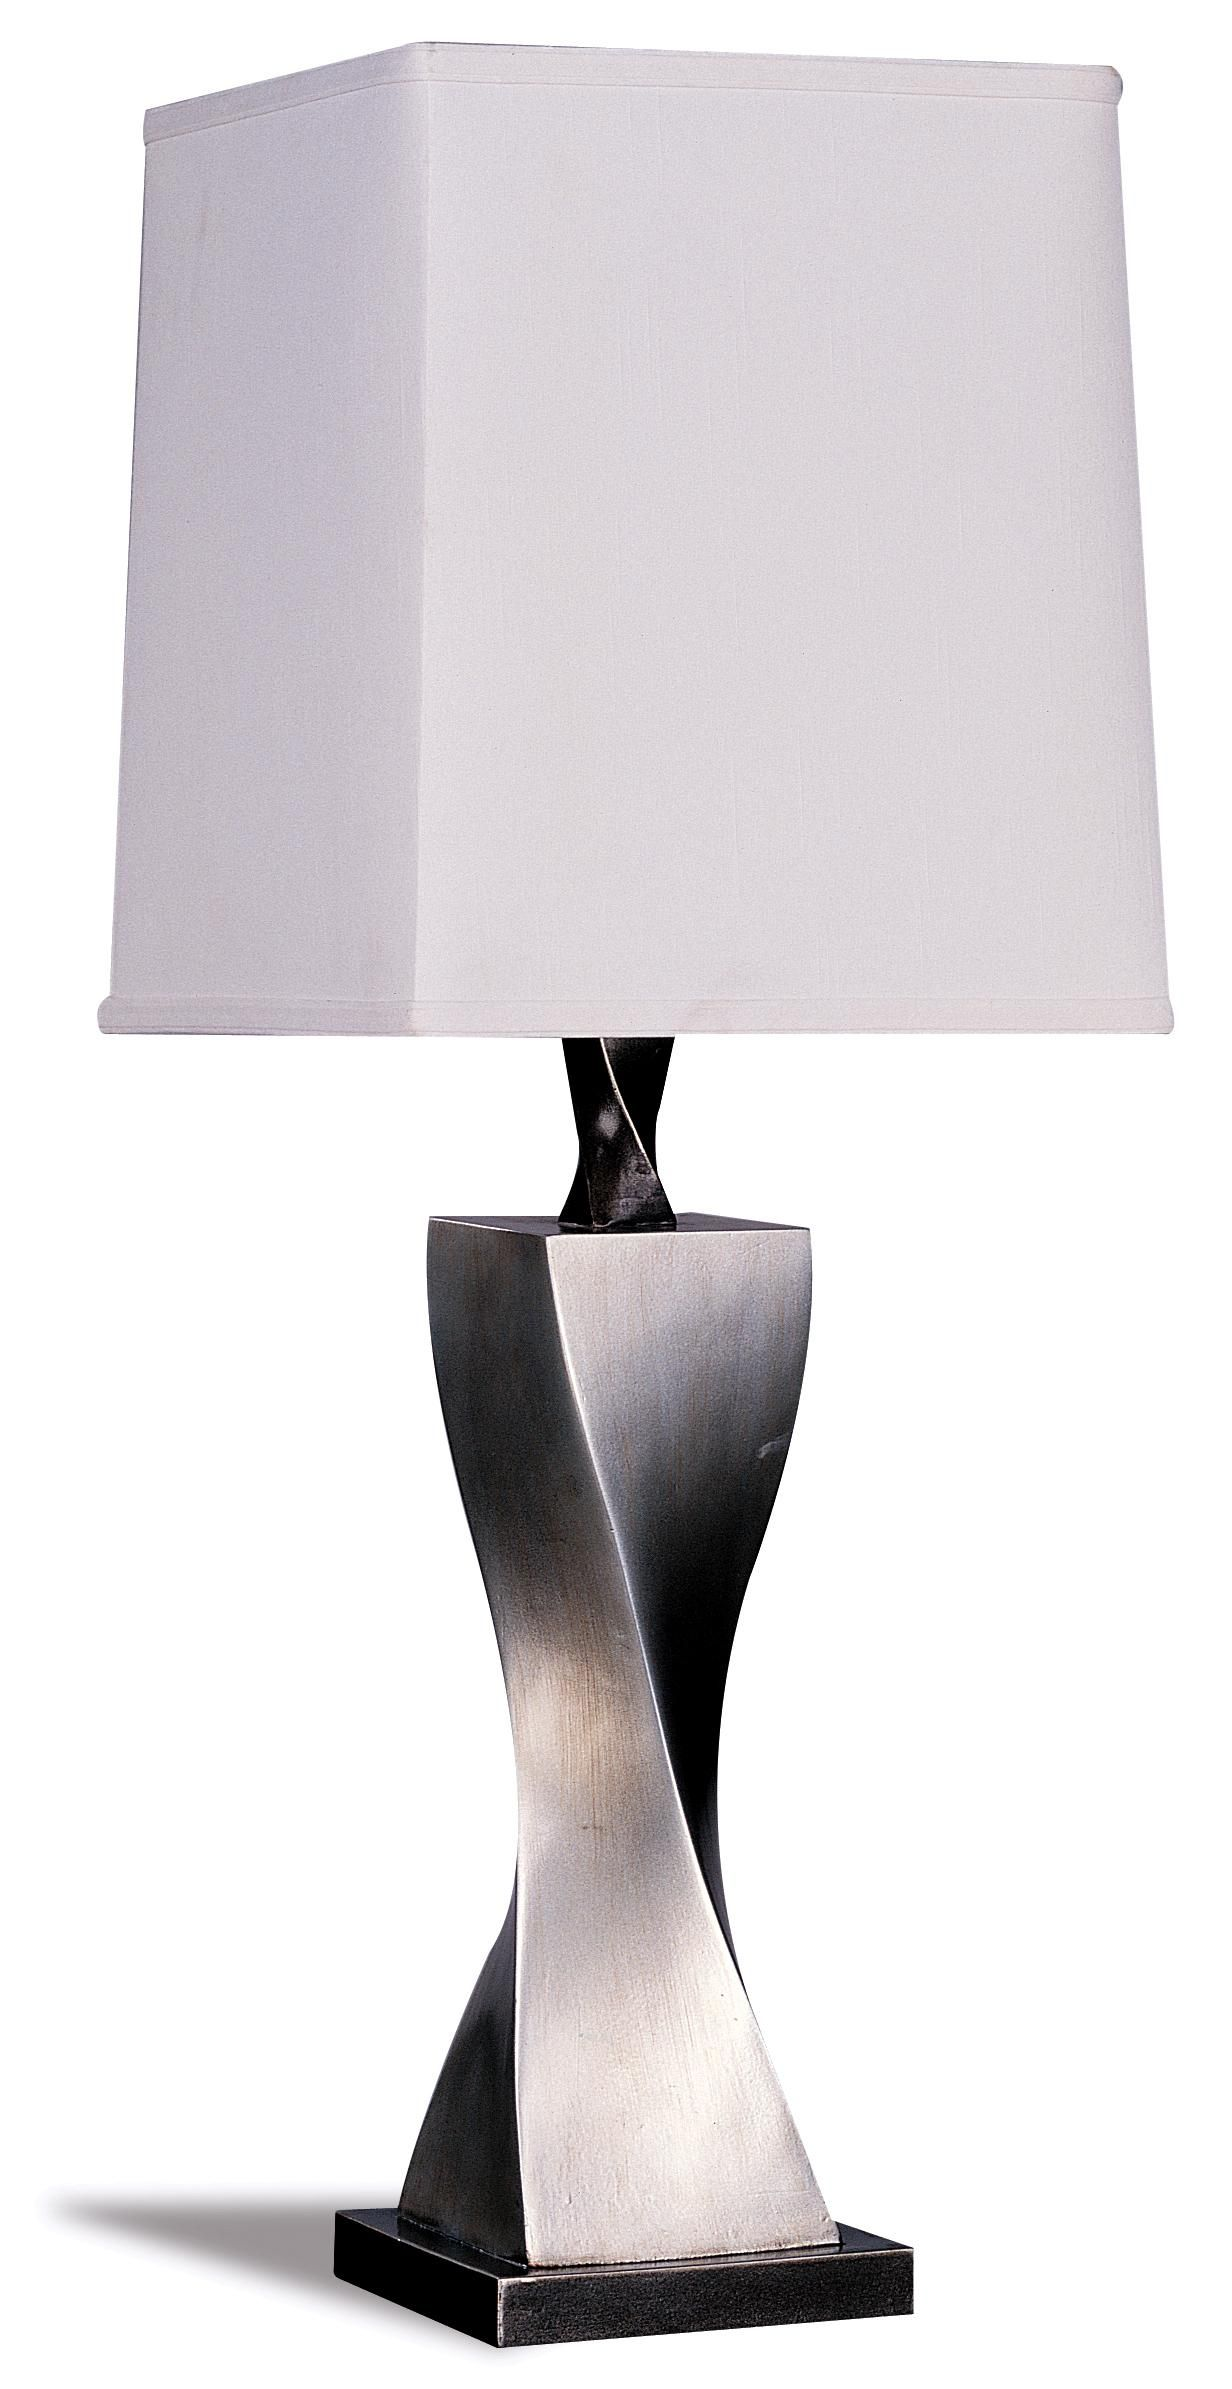 Table Lamps Table Lamp By Coaster Square Lamp Shades